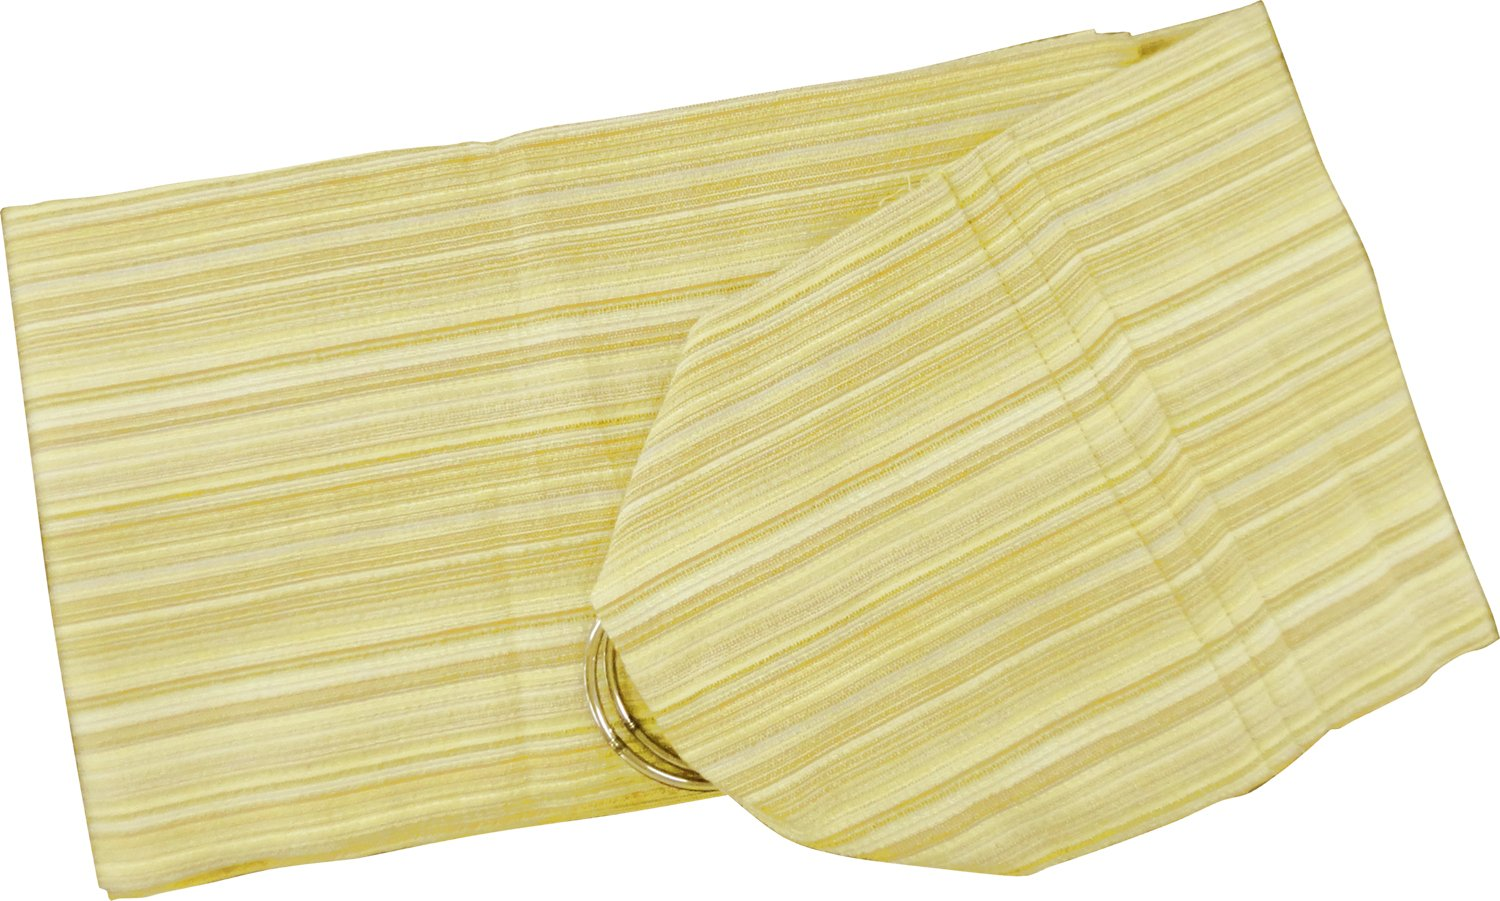 Sola High Quality SHIJIRA Texture Sling Yellow (BS-20)